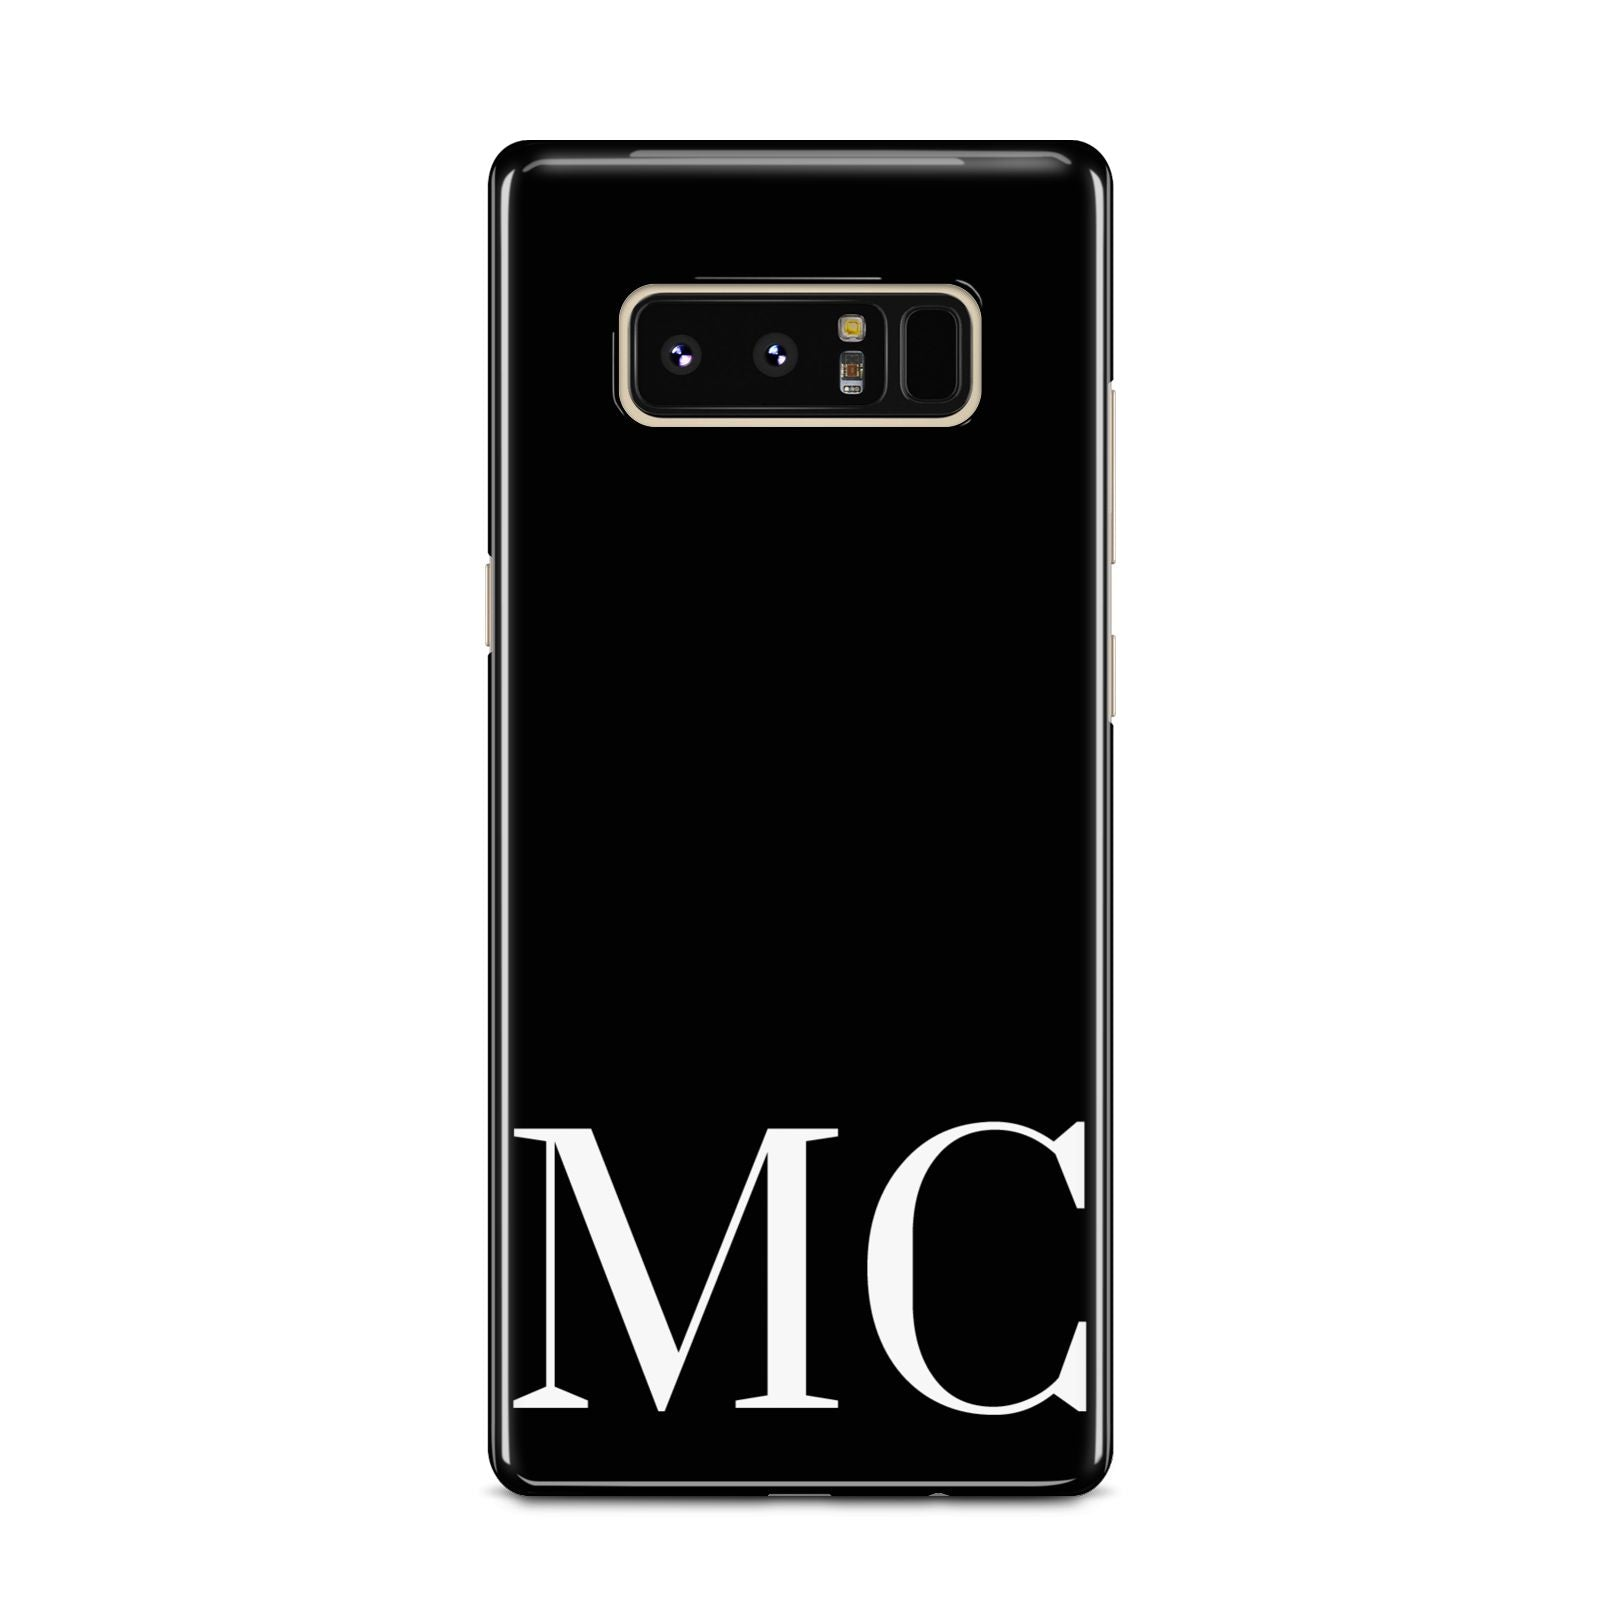 Initials Personalised 1 Samsung Galaxy Note 8 Case